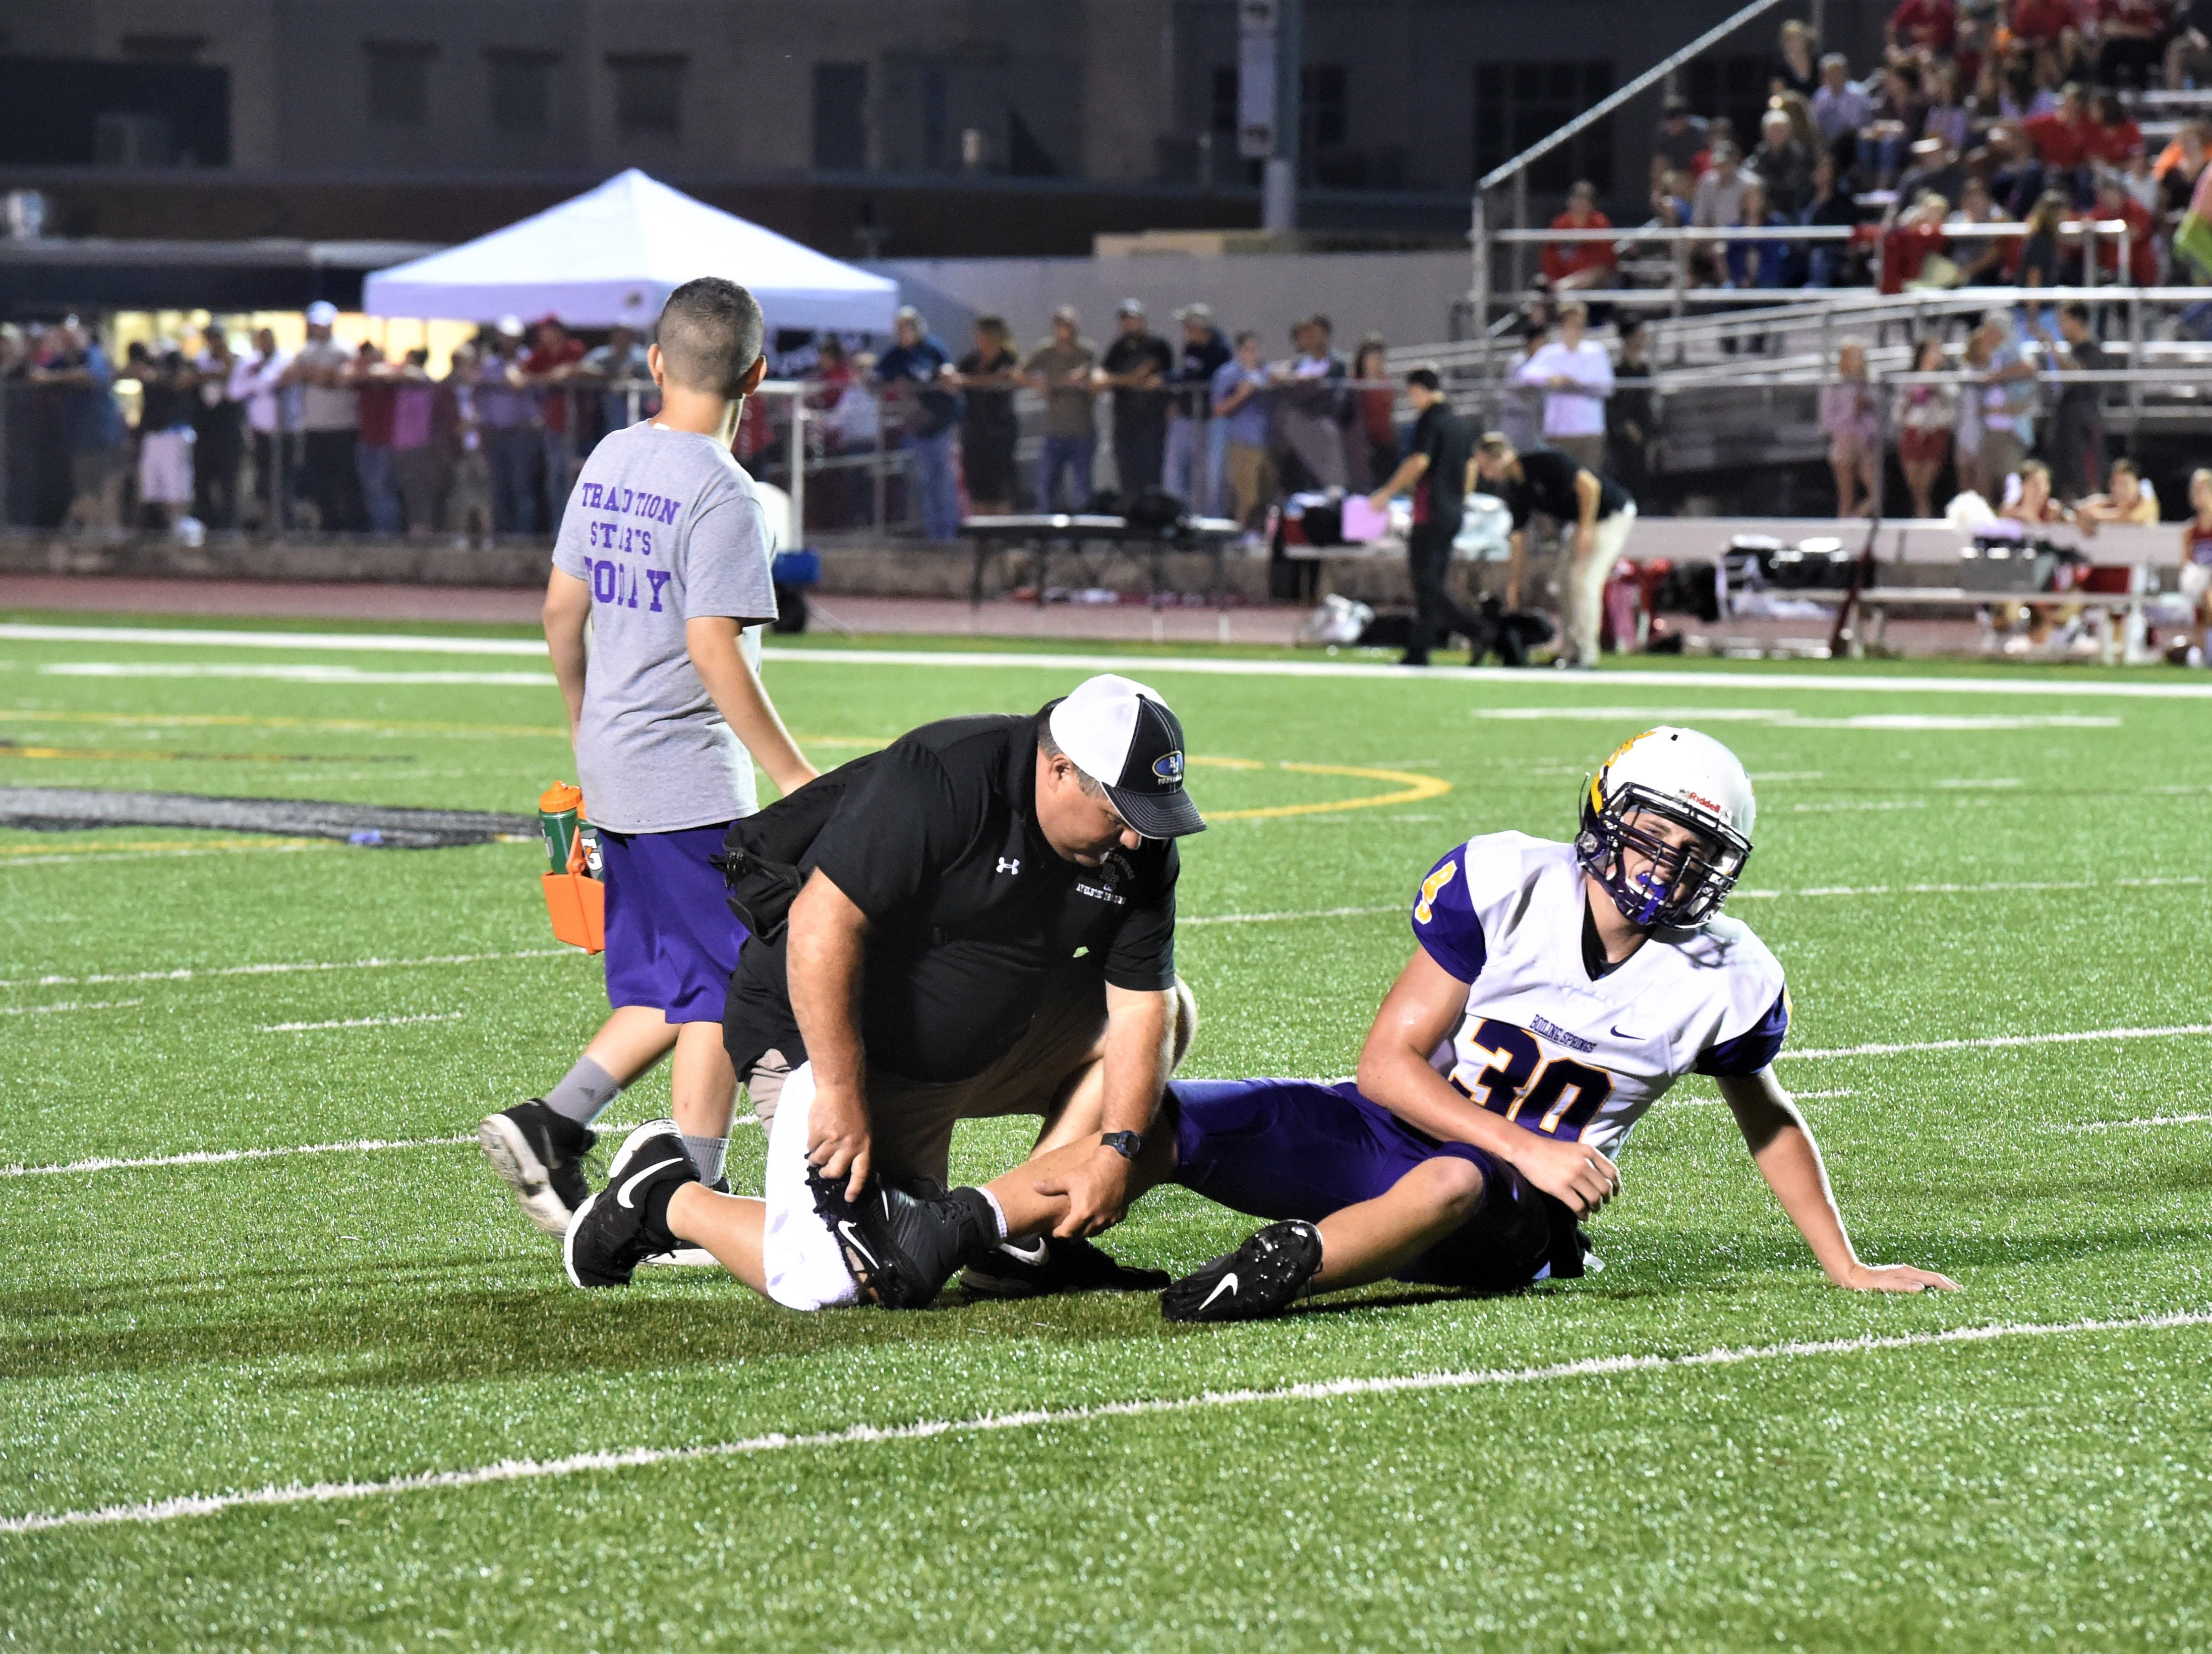 Mike Wagner, Boiling Springs senior, was one of several players that were injured during the Aug. 31, 2018 game against Bermudian Springs. The Eagles came out on top in their home game against the Bubblers, 27-12.